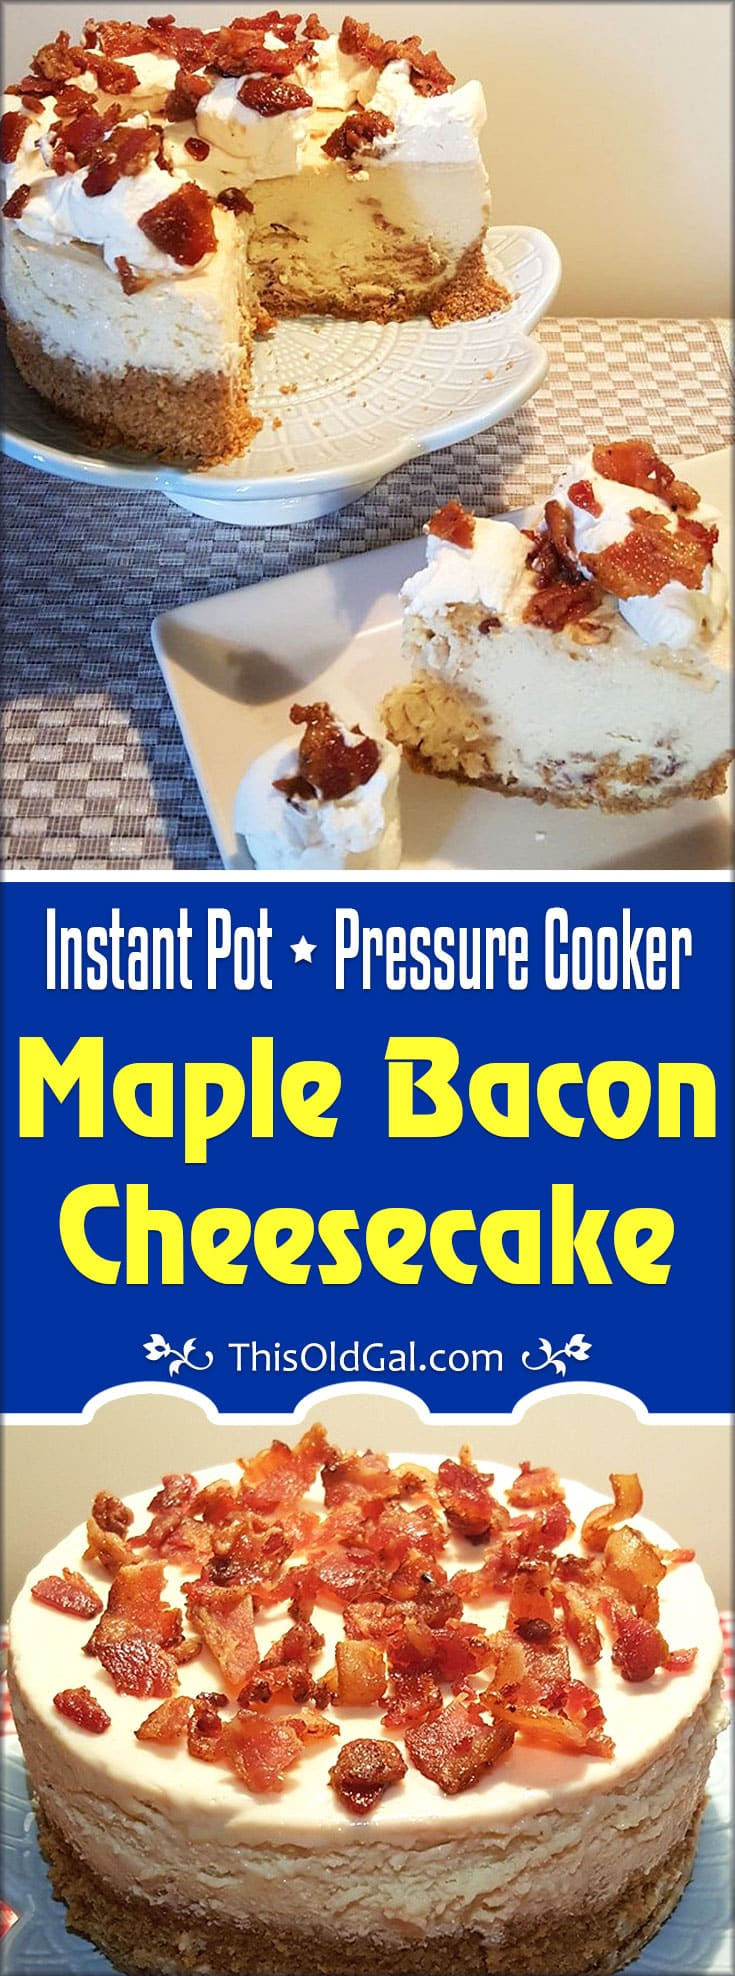 Pressure Cooker Maple Bacon Cheesecake